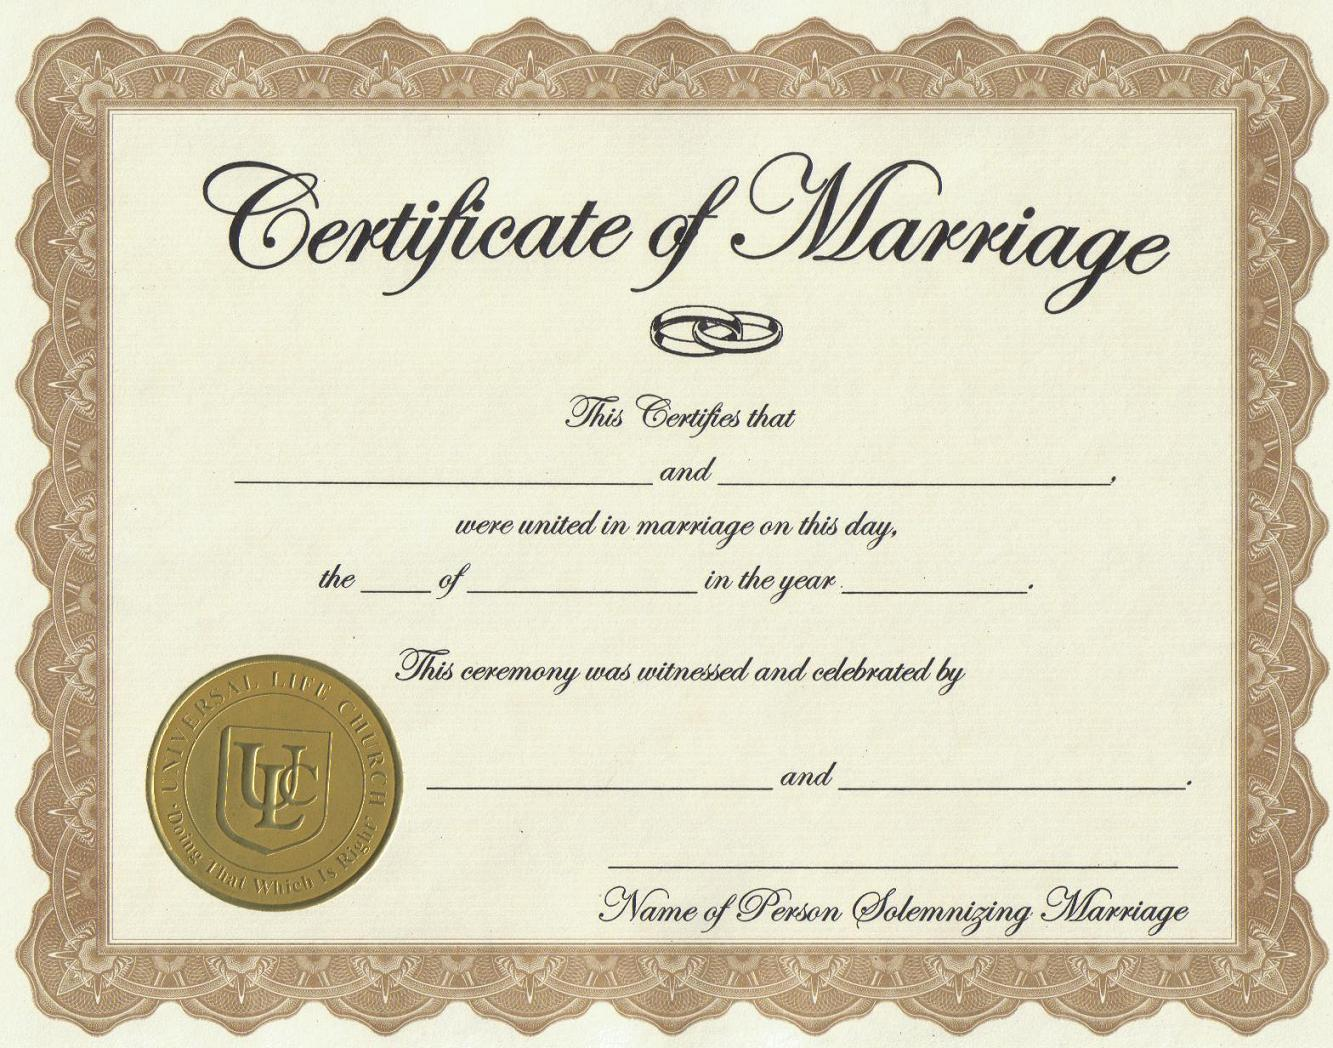 Deversdesign: Marriage Laws In Arlington Virginia